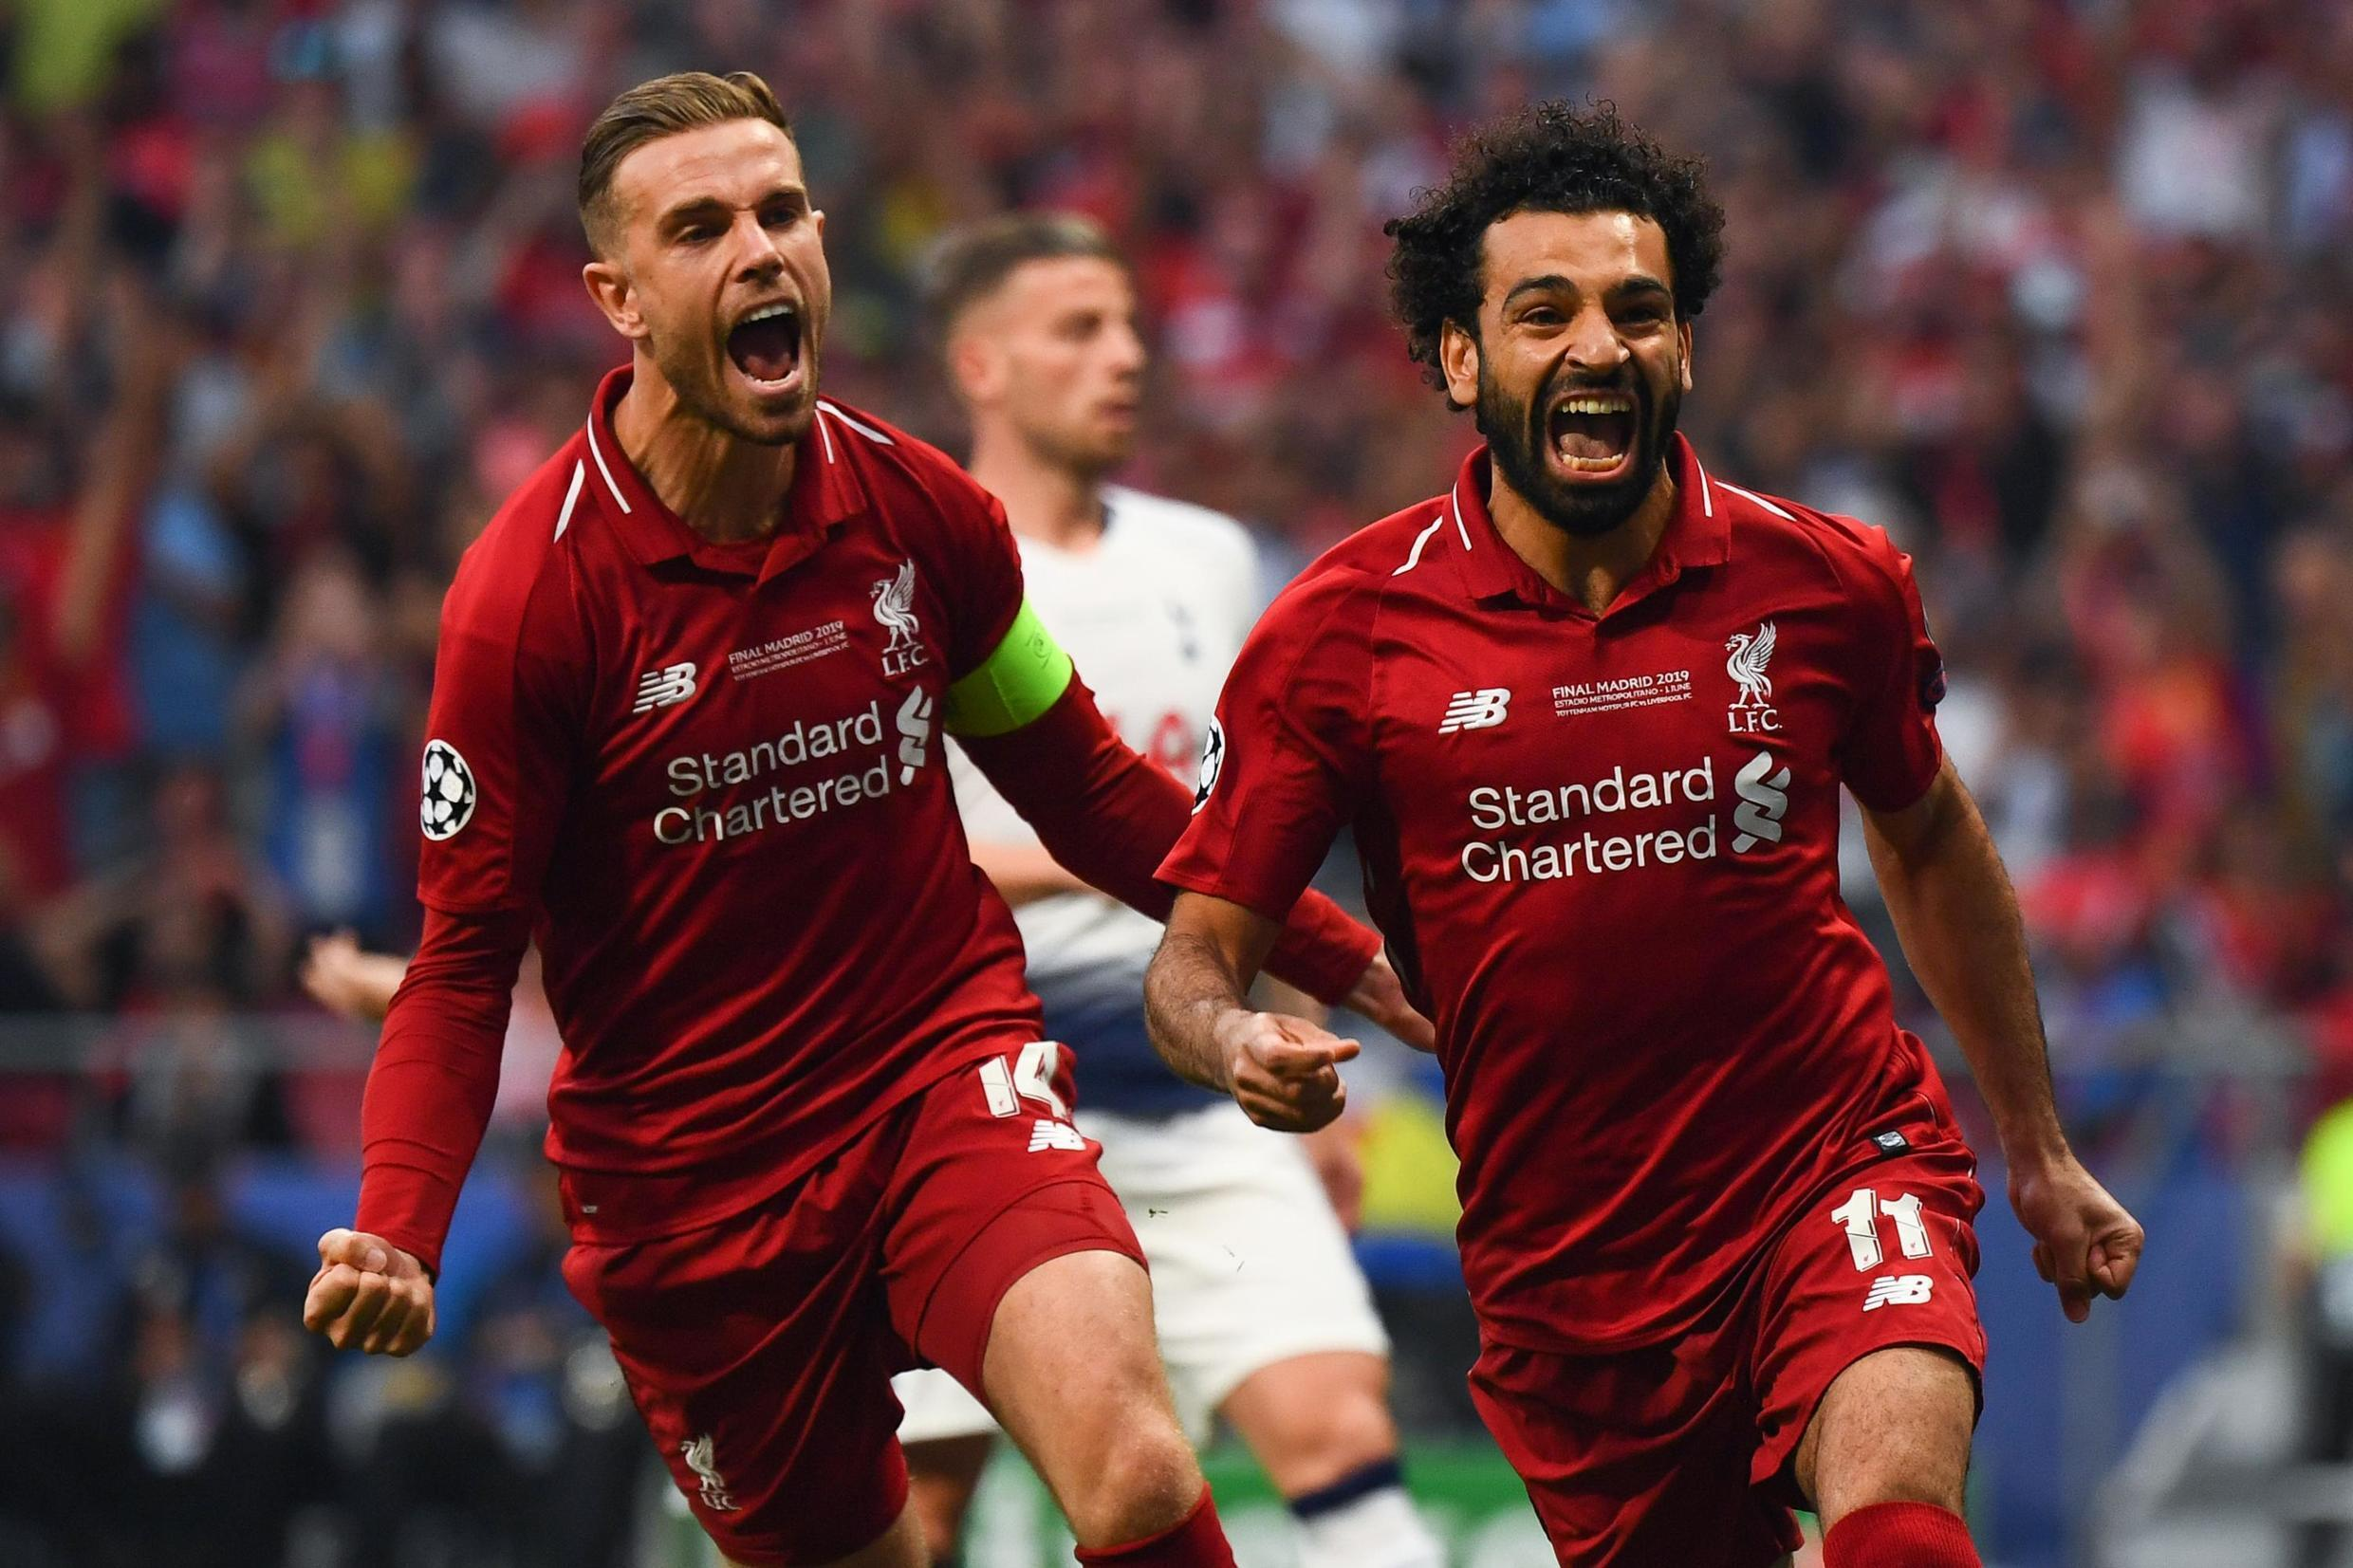 Egypt's Mohamed Salah scores for Liverpool in the final of the Champions League against Tottenham.